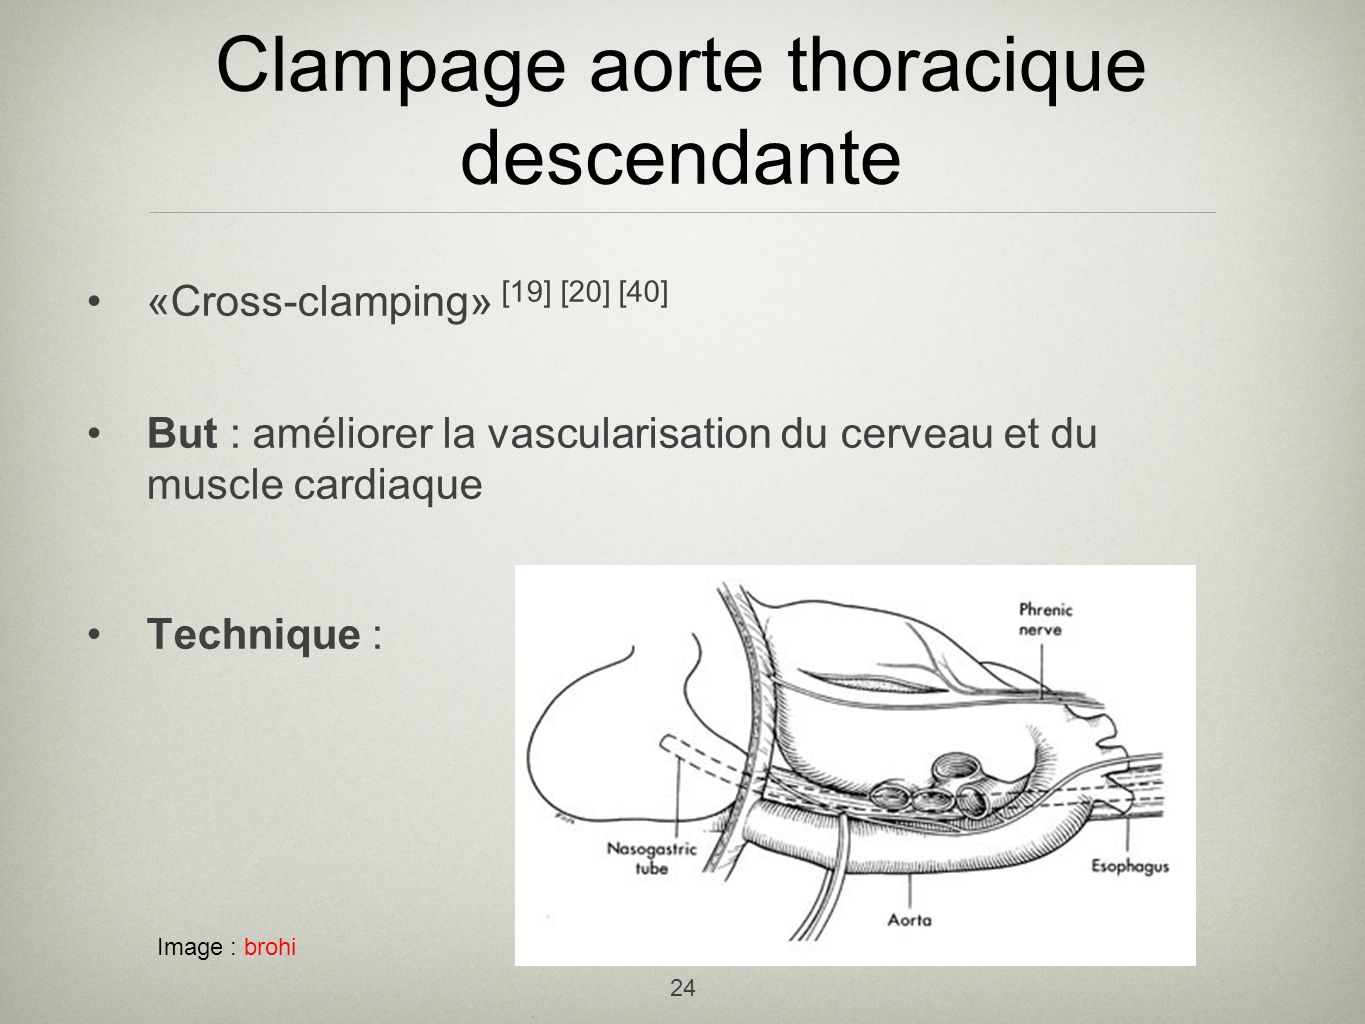 Clampage aorte thoracique descendante